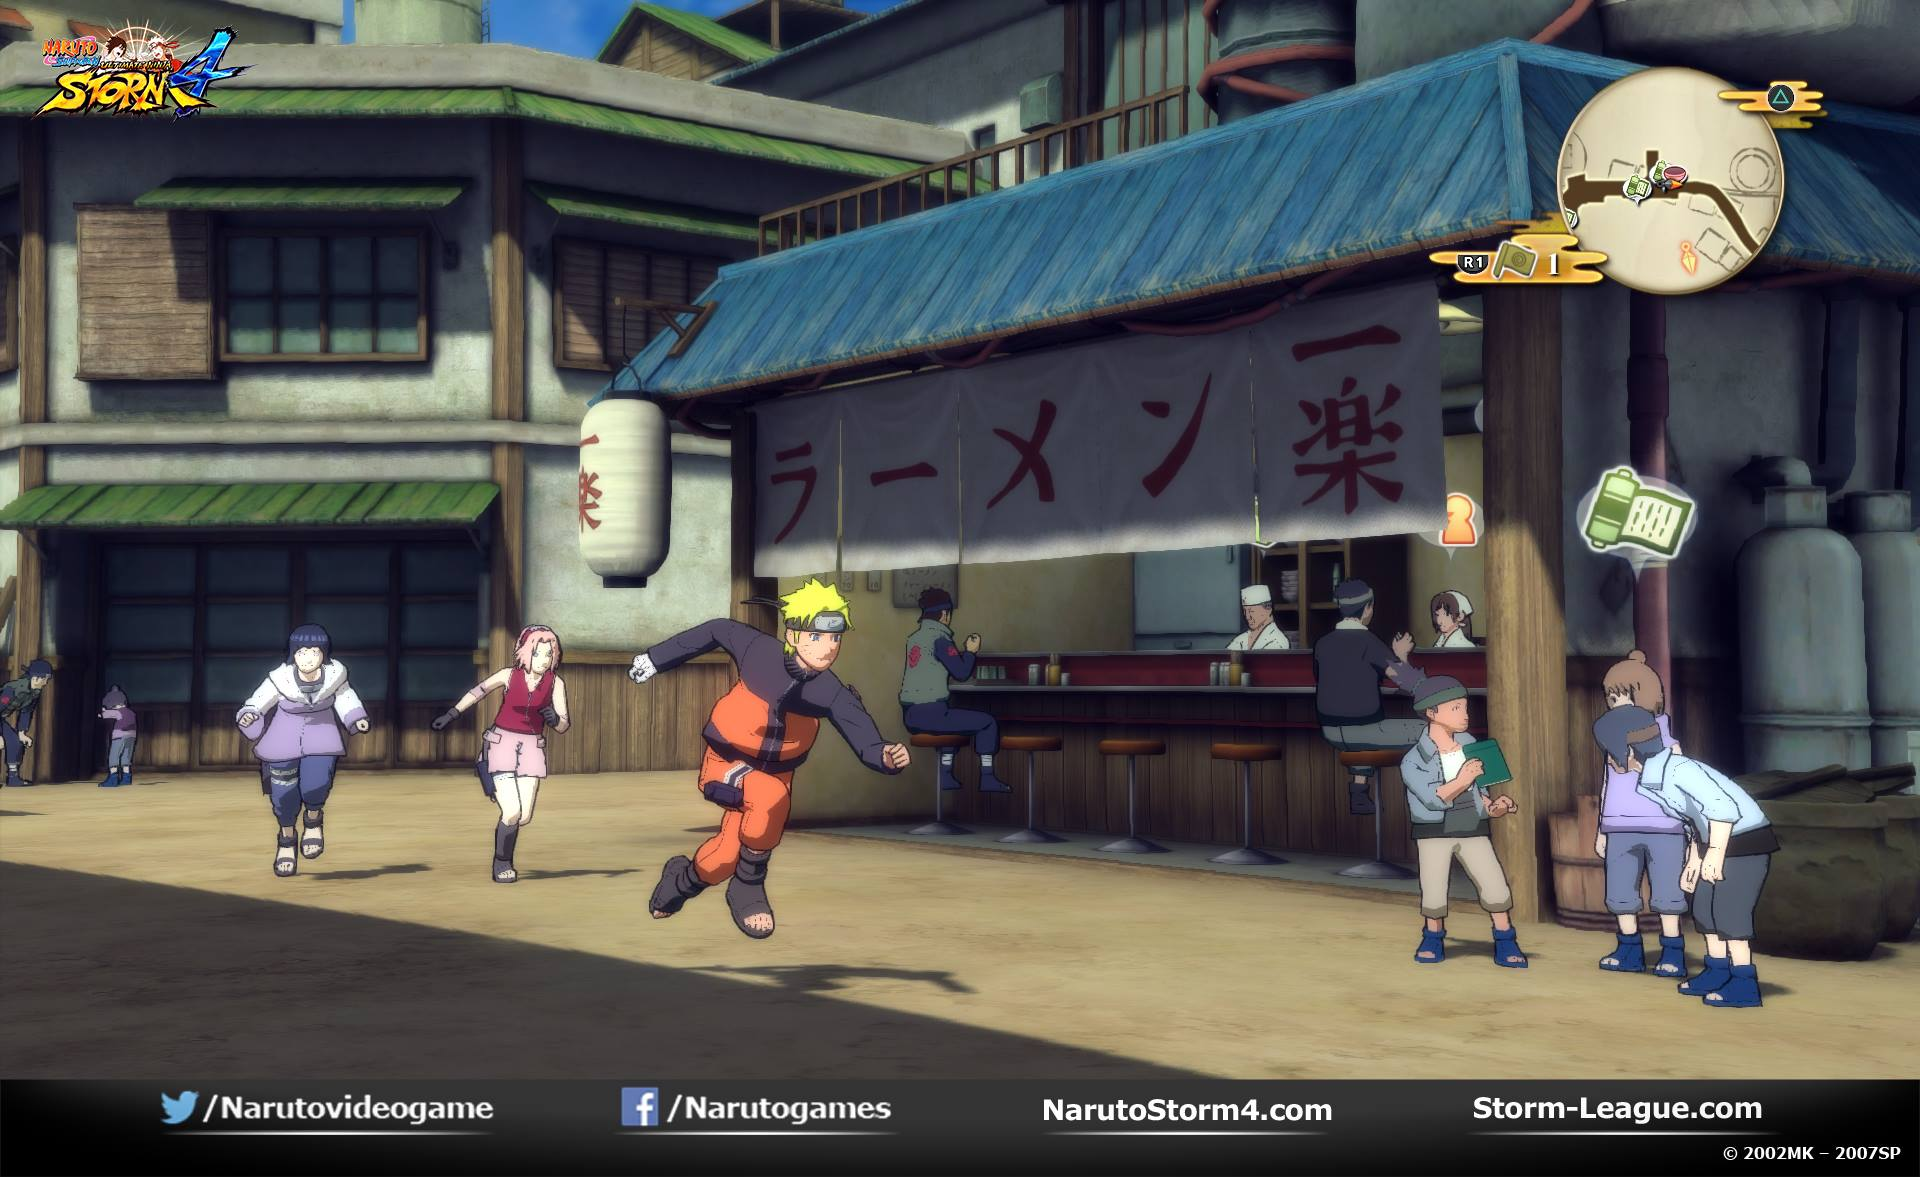 Review: Naruto Shippuden: Ultimate Ninja Storm 4 (PC Version